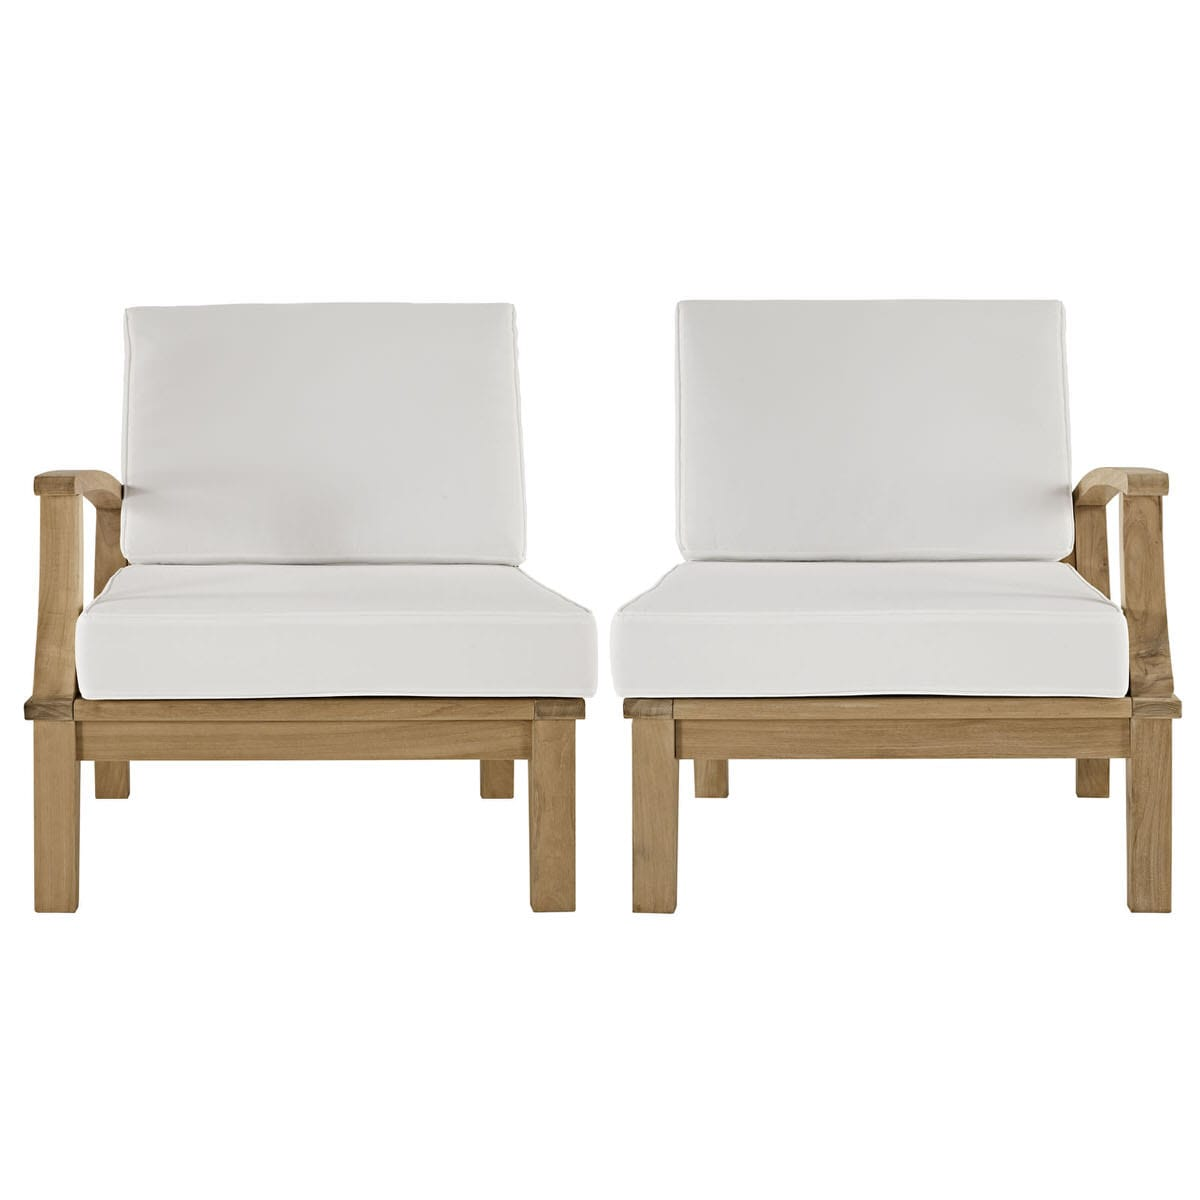 Phenomenal Marina 2 Piece Outdoor Patio Teak Sofa Set Natural White By Modern Living Download Free Architecture Designs Sospemadebymaigaardcom